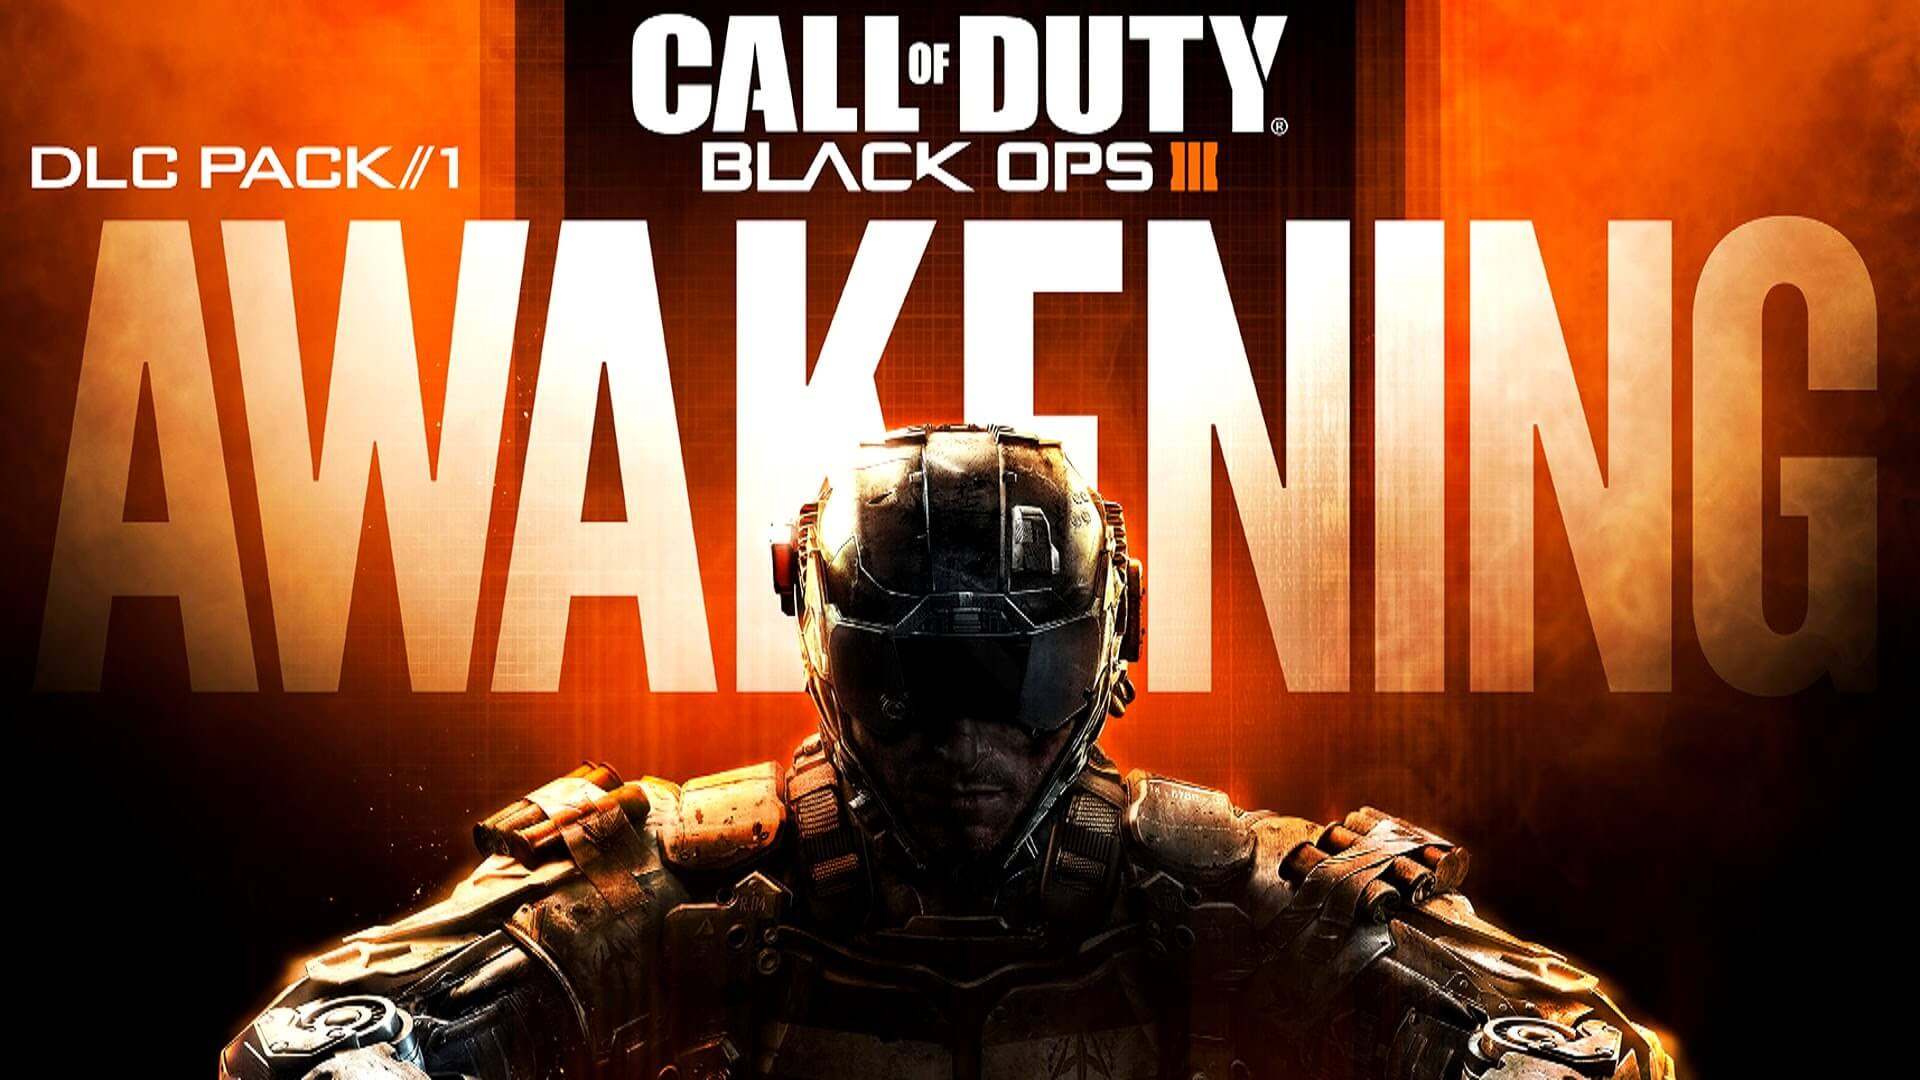 First Black Ops 3 DLC Pack Announced